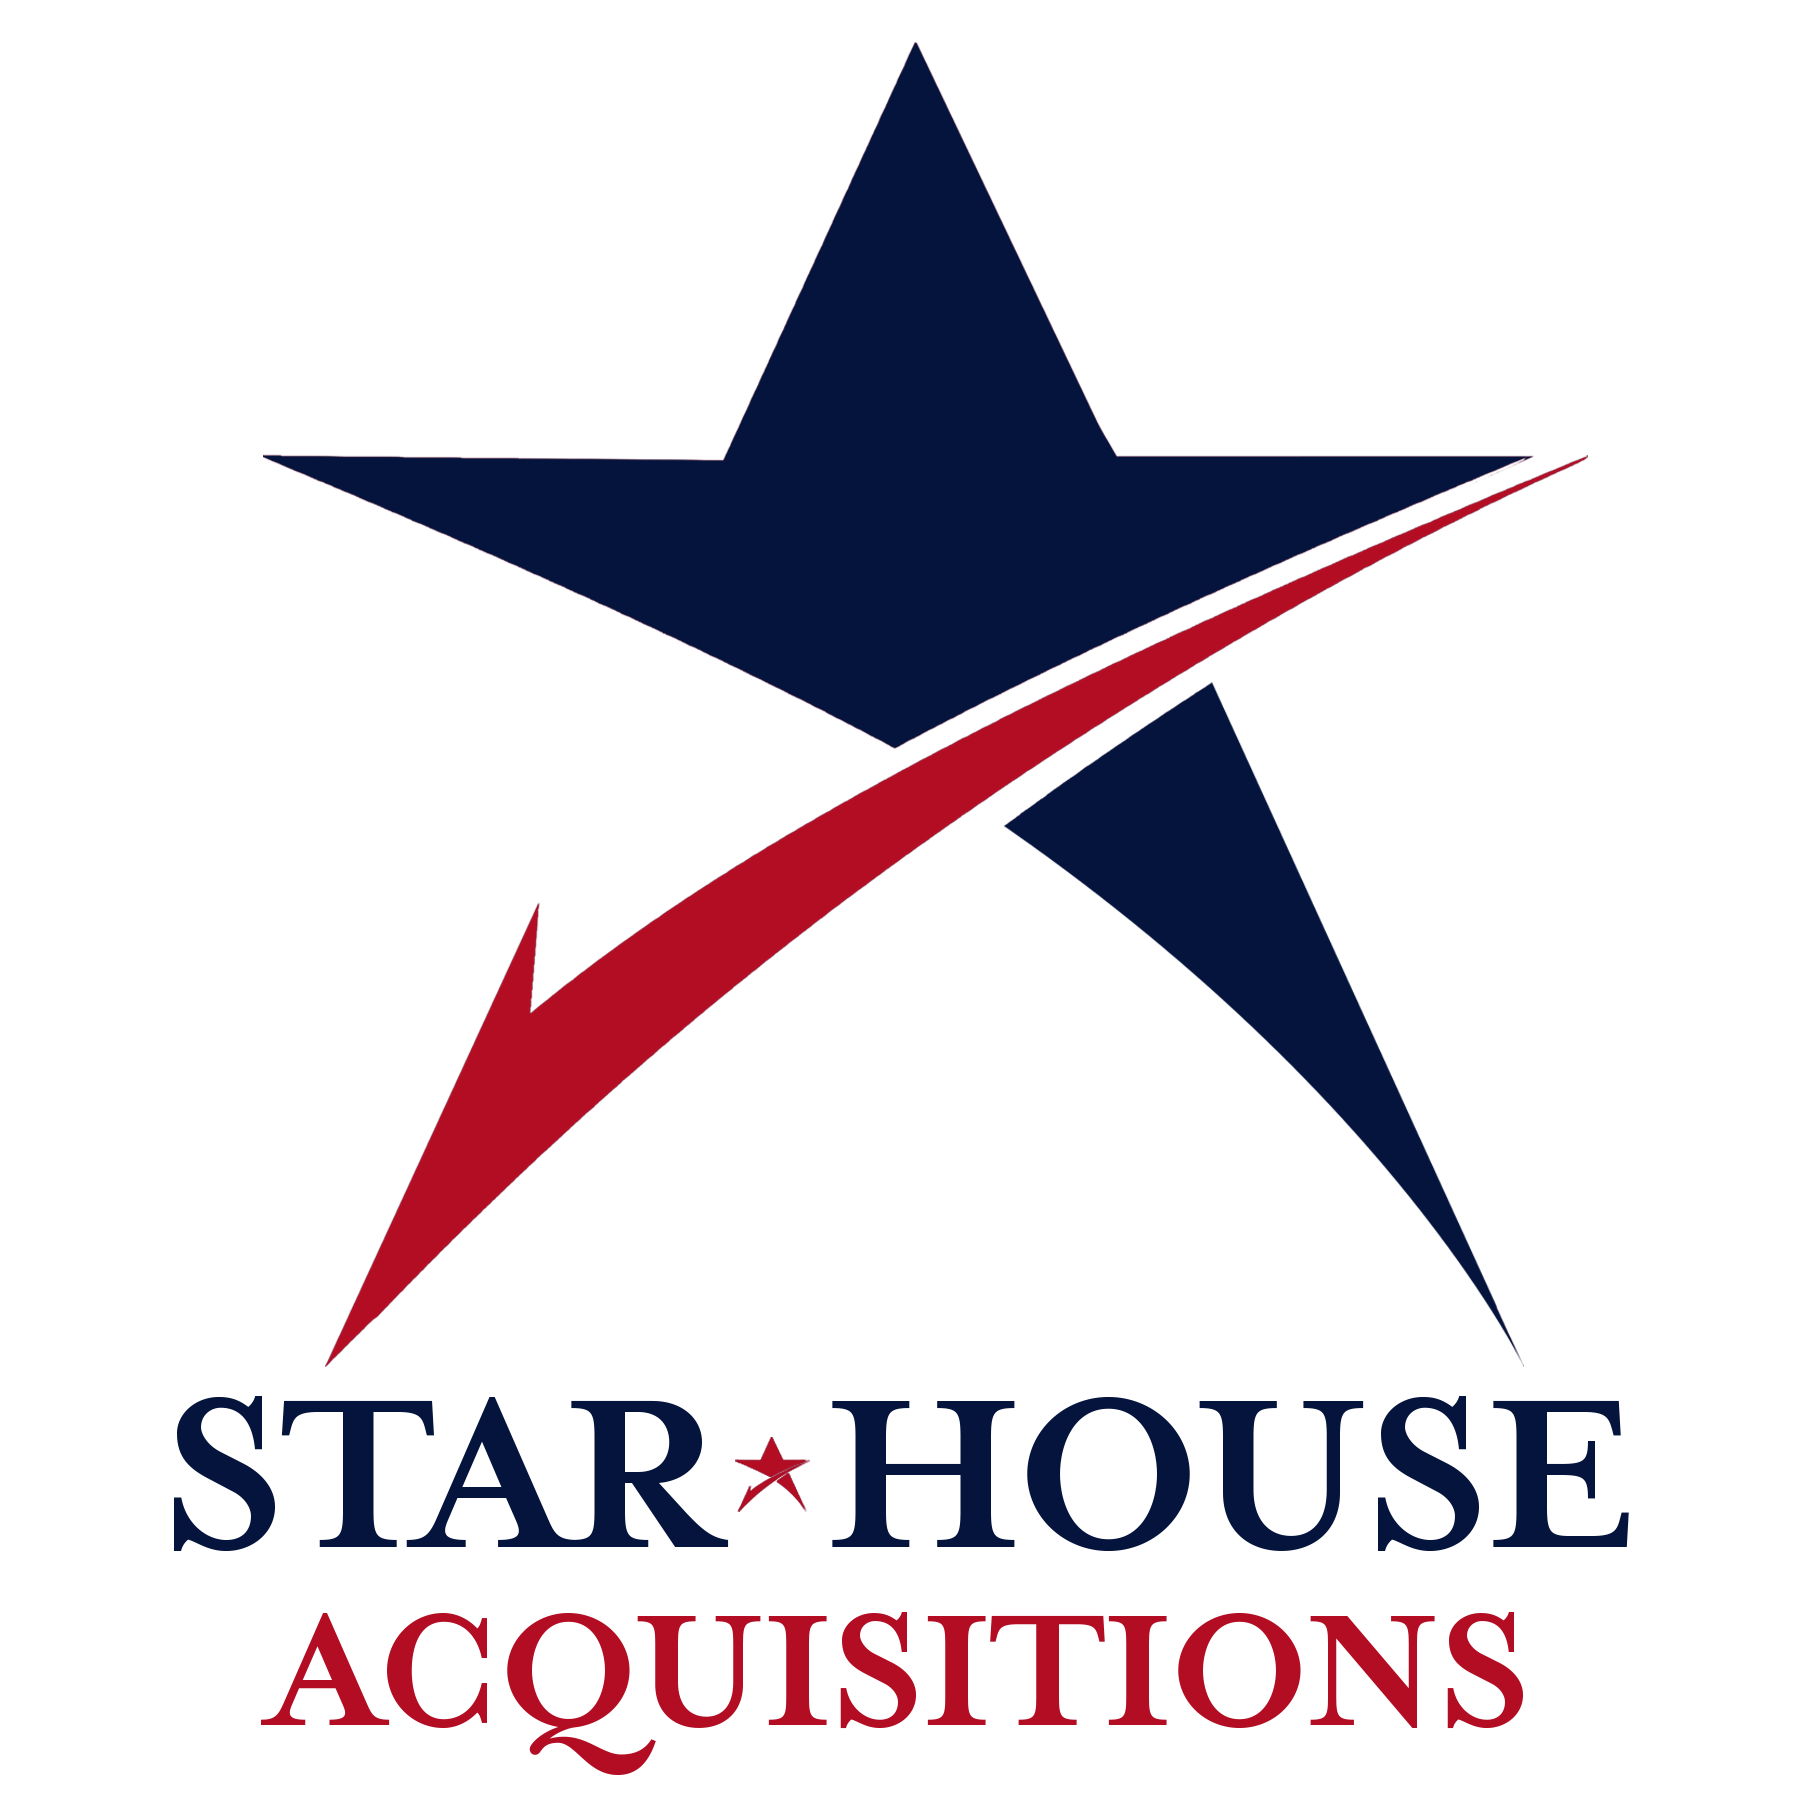 Star House Acquisitions logo